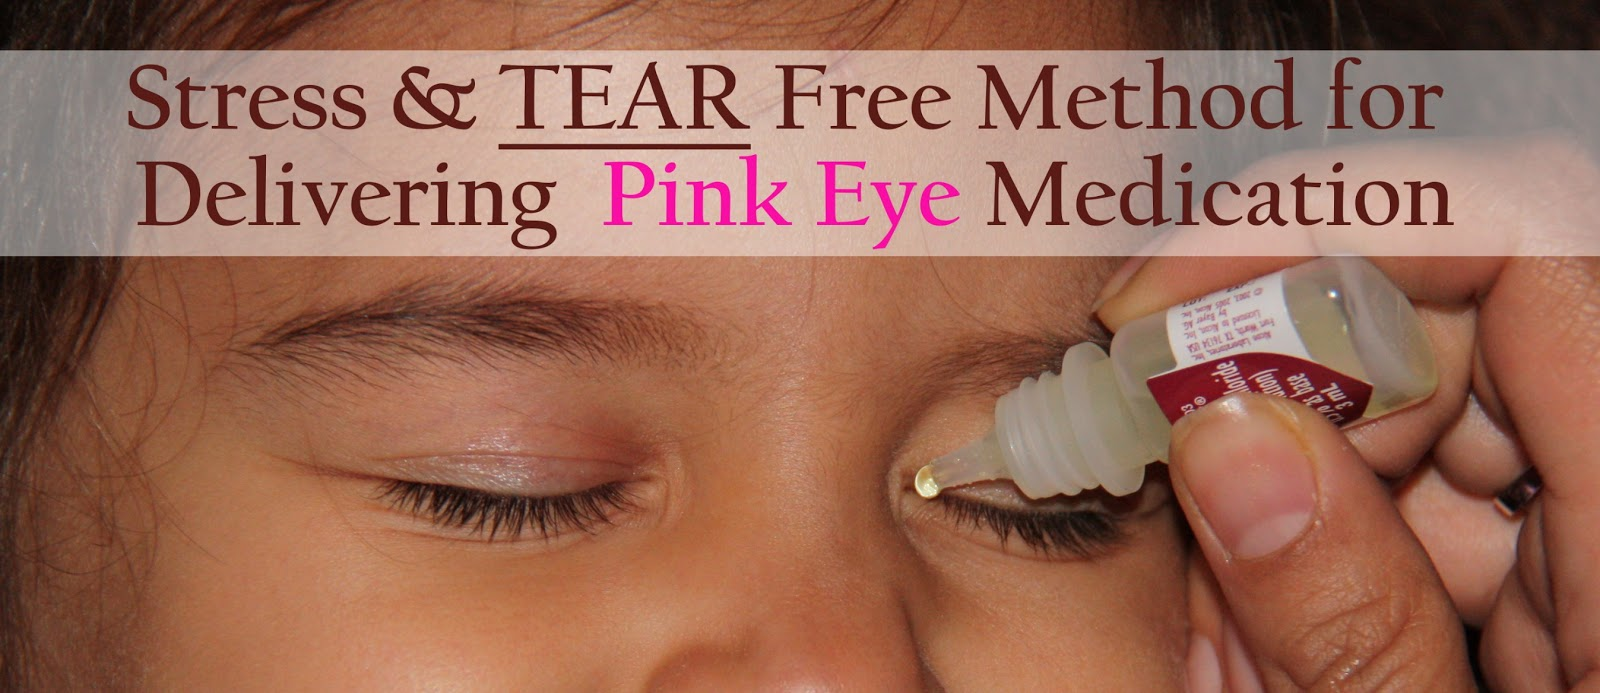 How To Easy Method For Delivering Pink Eye Medication The